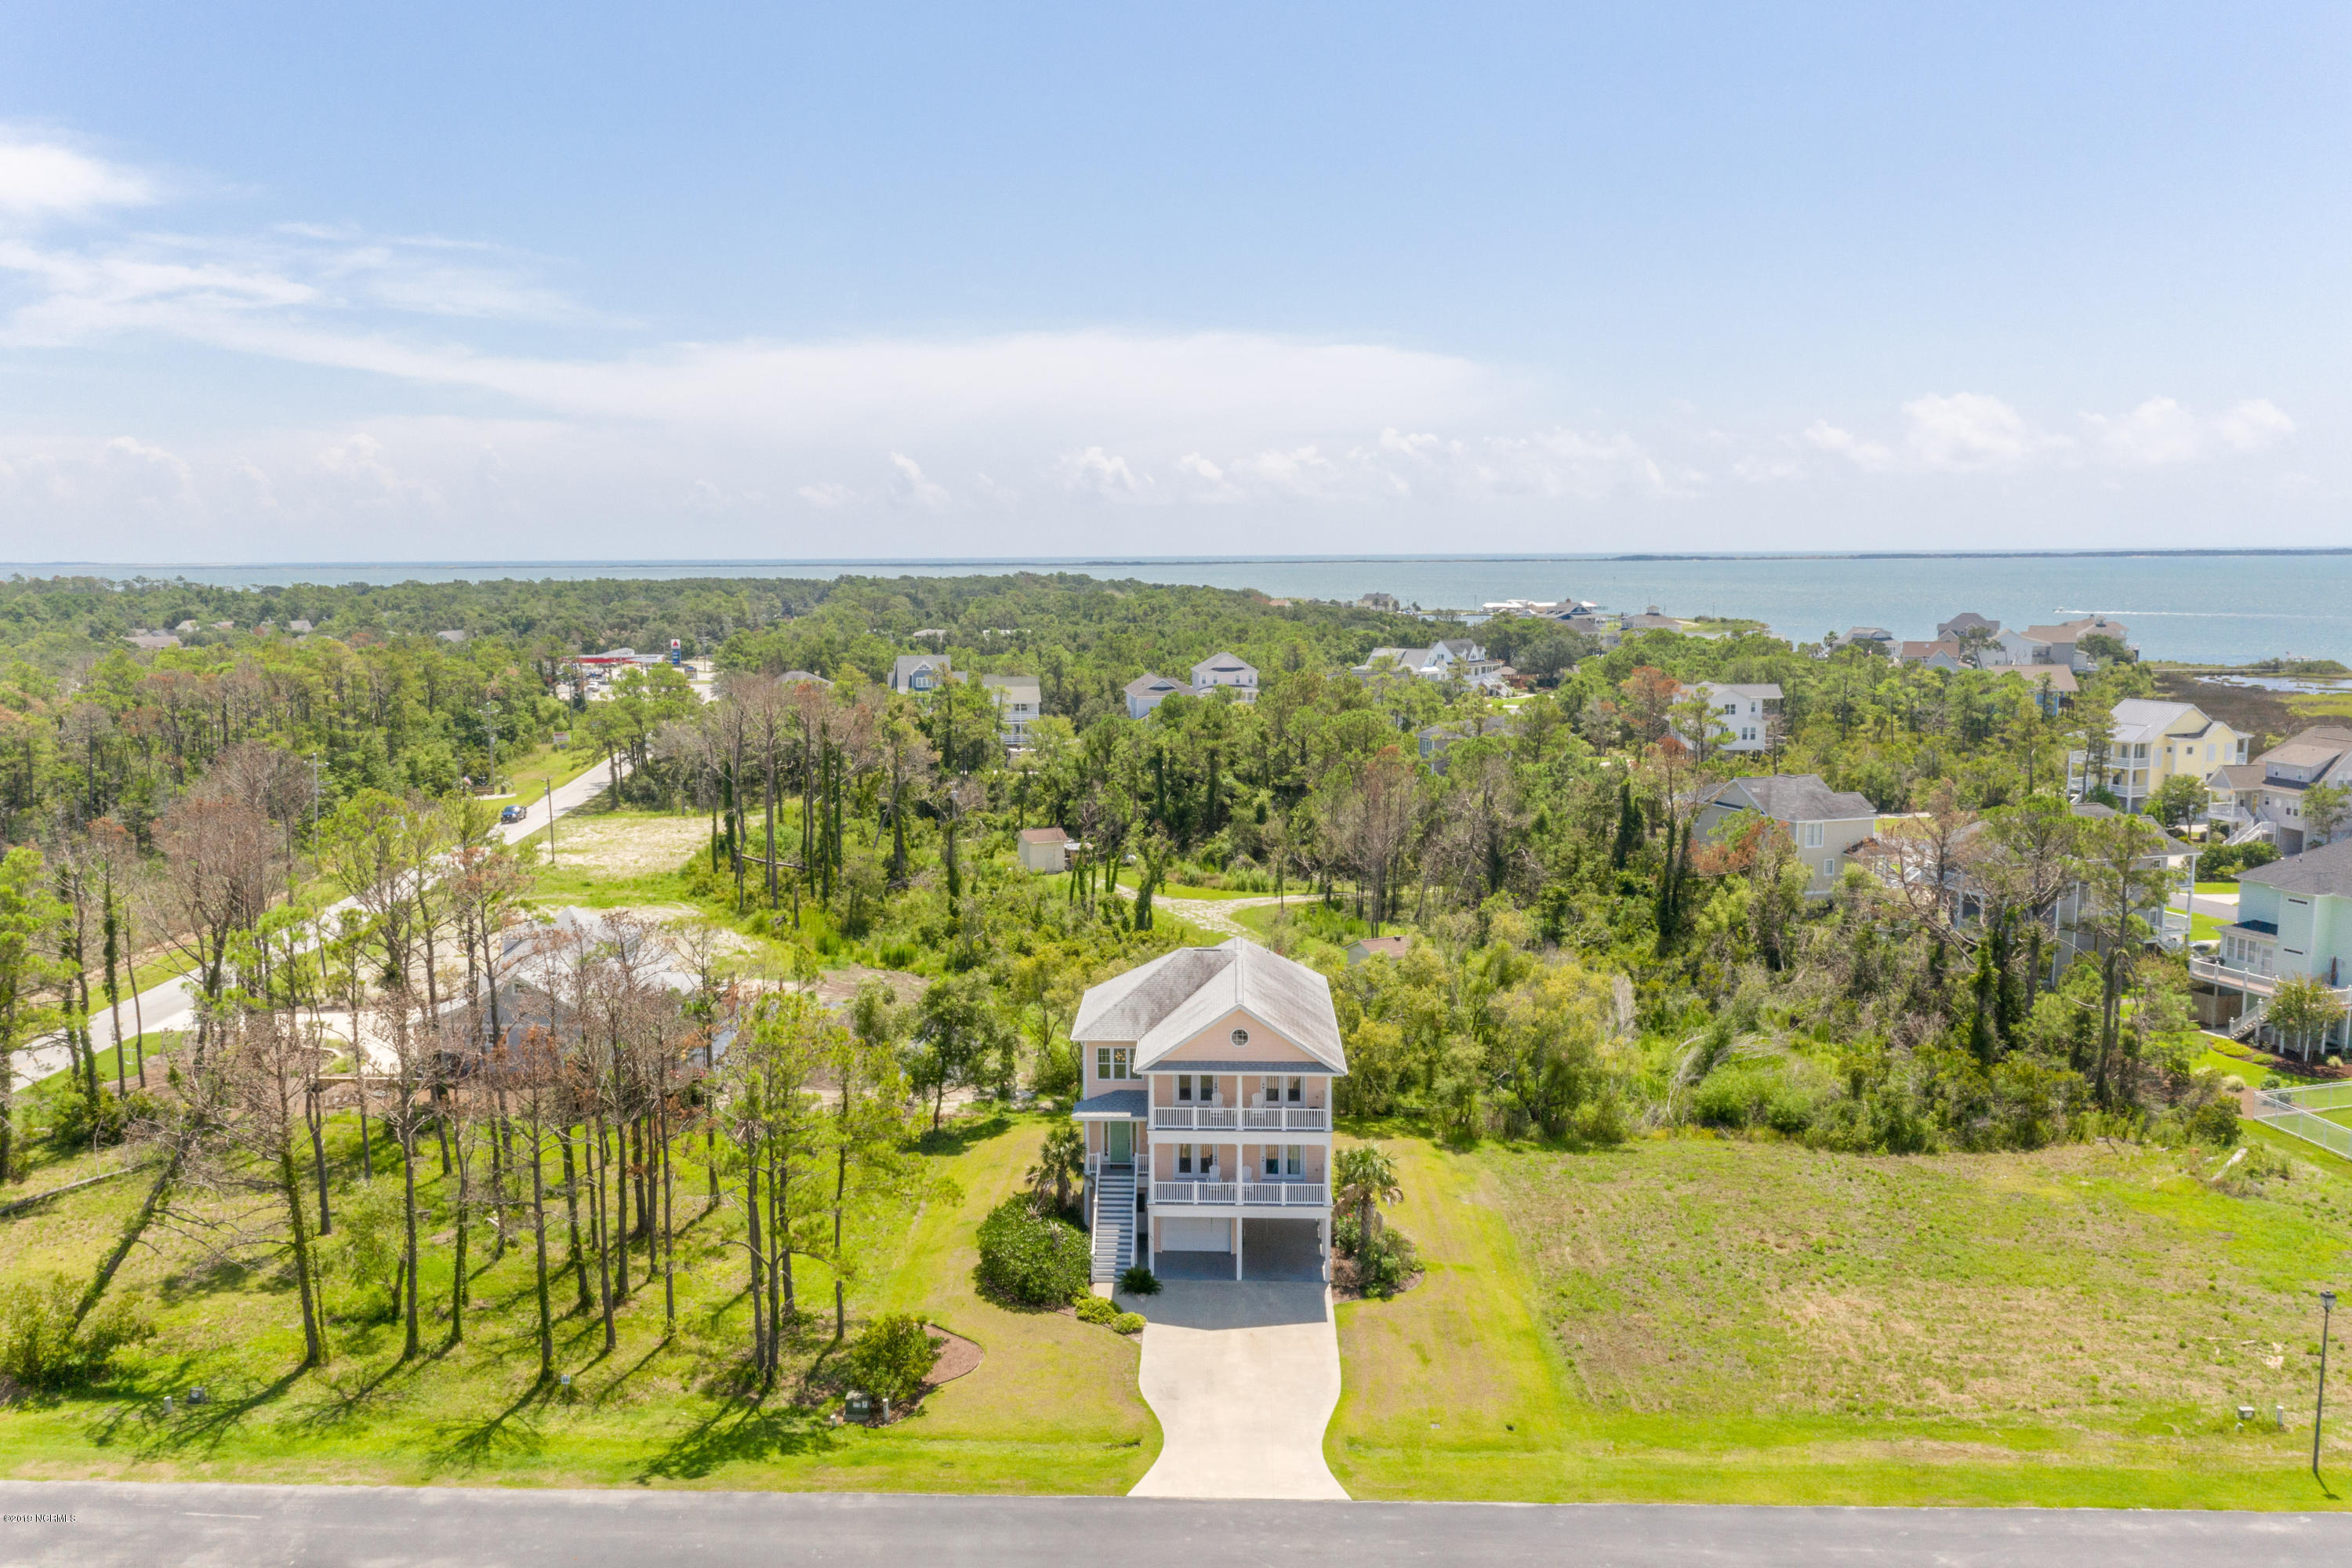 105 Pintail Lane, Harkers Island, North Carolina 28531, 4 Bedrooms Bedrooms, 8 Rooms Rooms,3 BathroomsBathrooms,Single family residence,For sale,Pintail,100179146